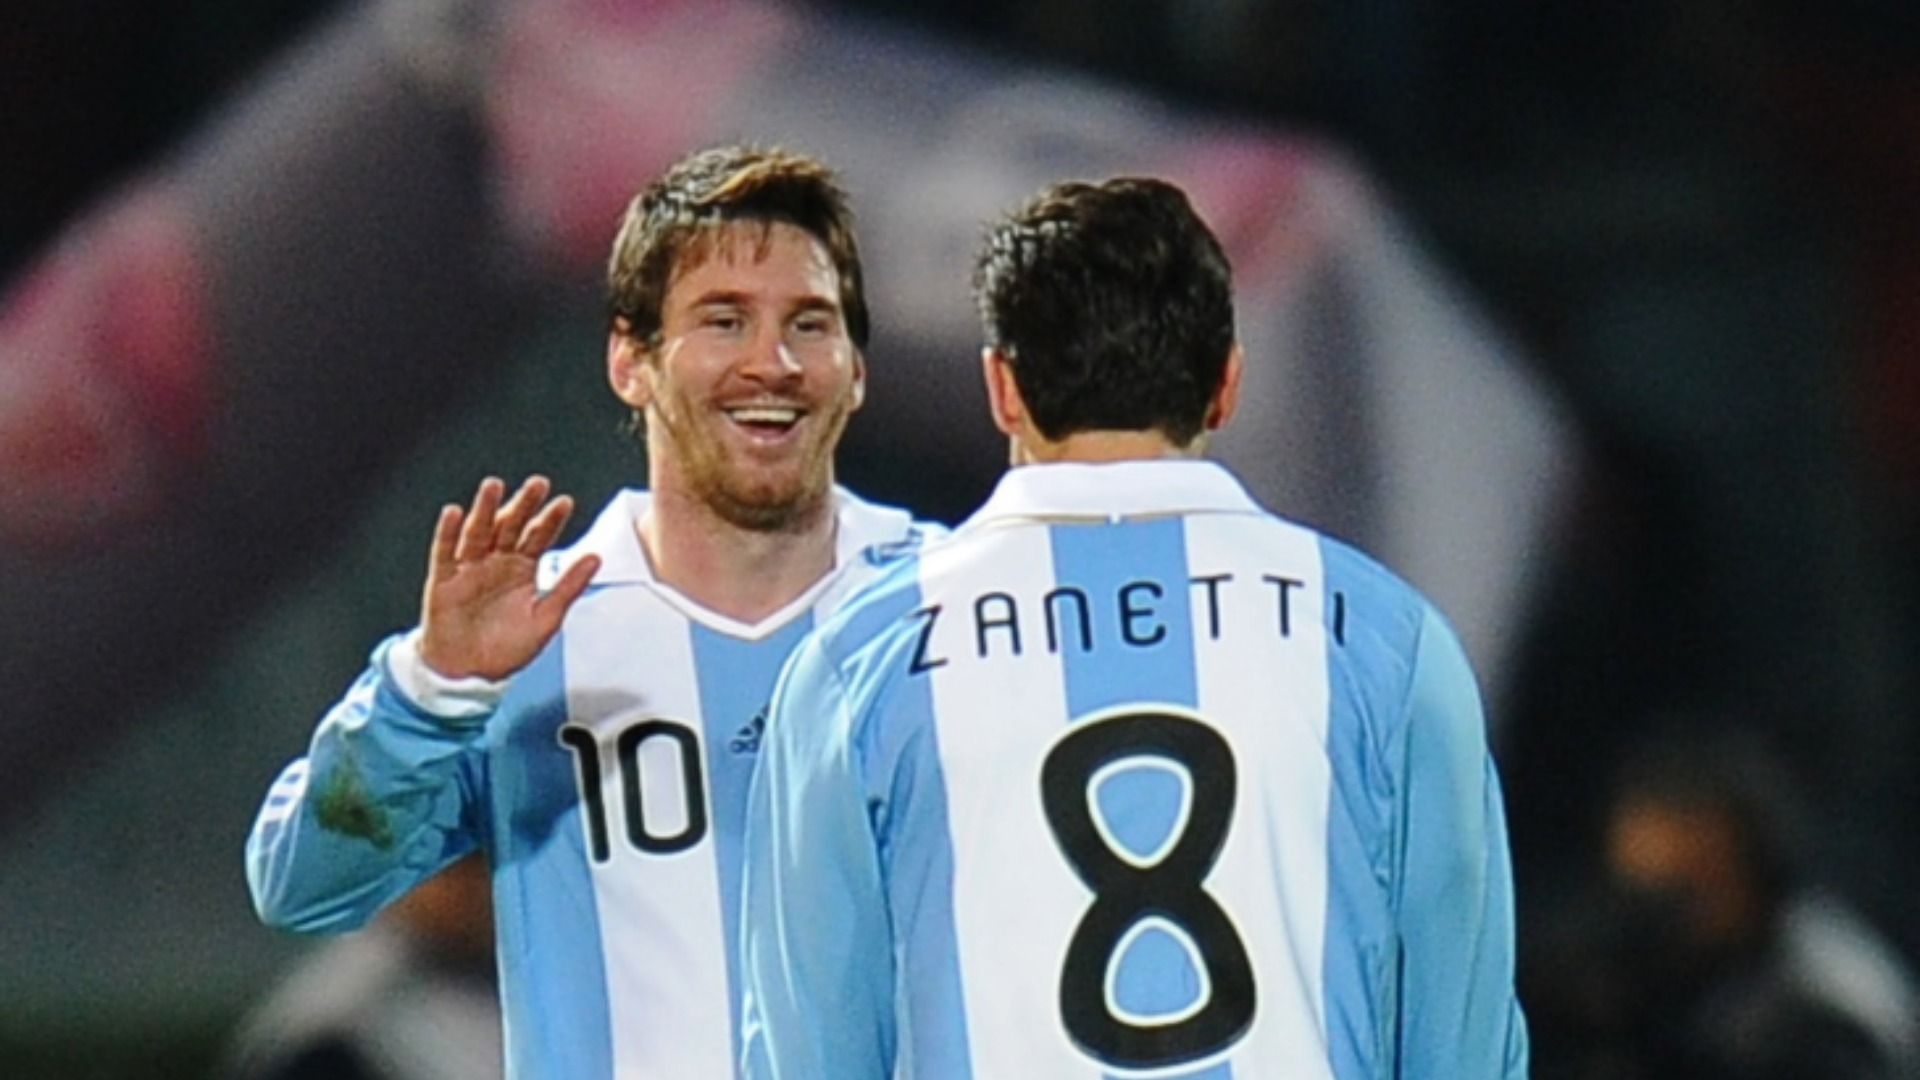 Messi to Inter? Only if Zanetti convinces him, says Veron